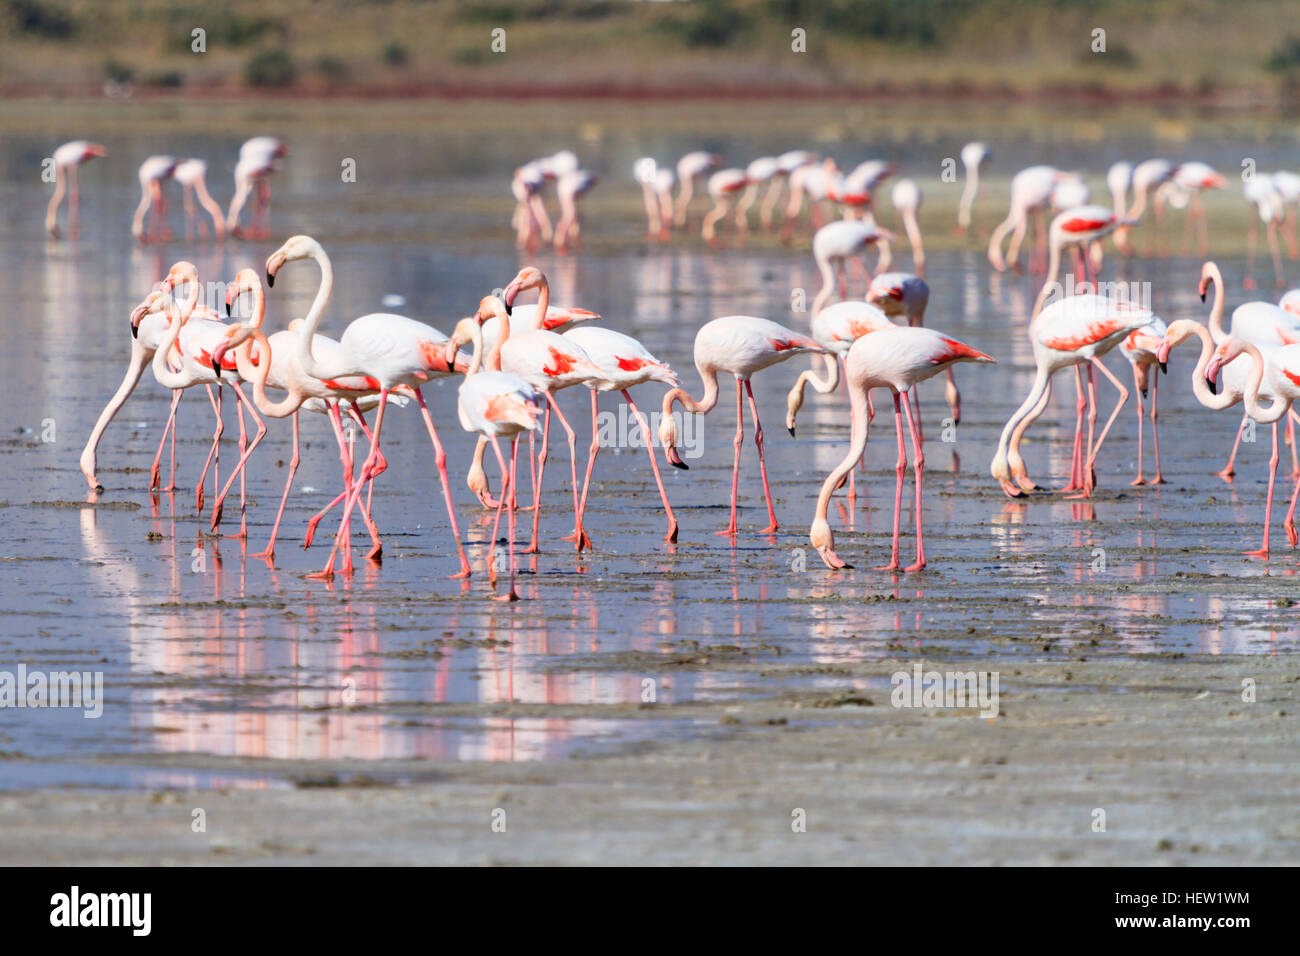 annual-flamingo-migration-to-larnaca-sal